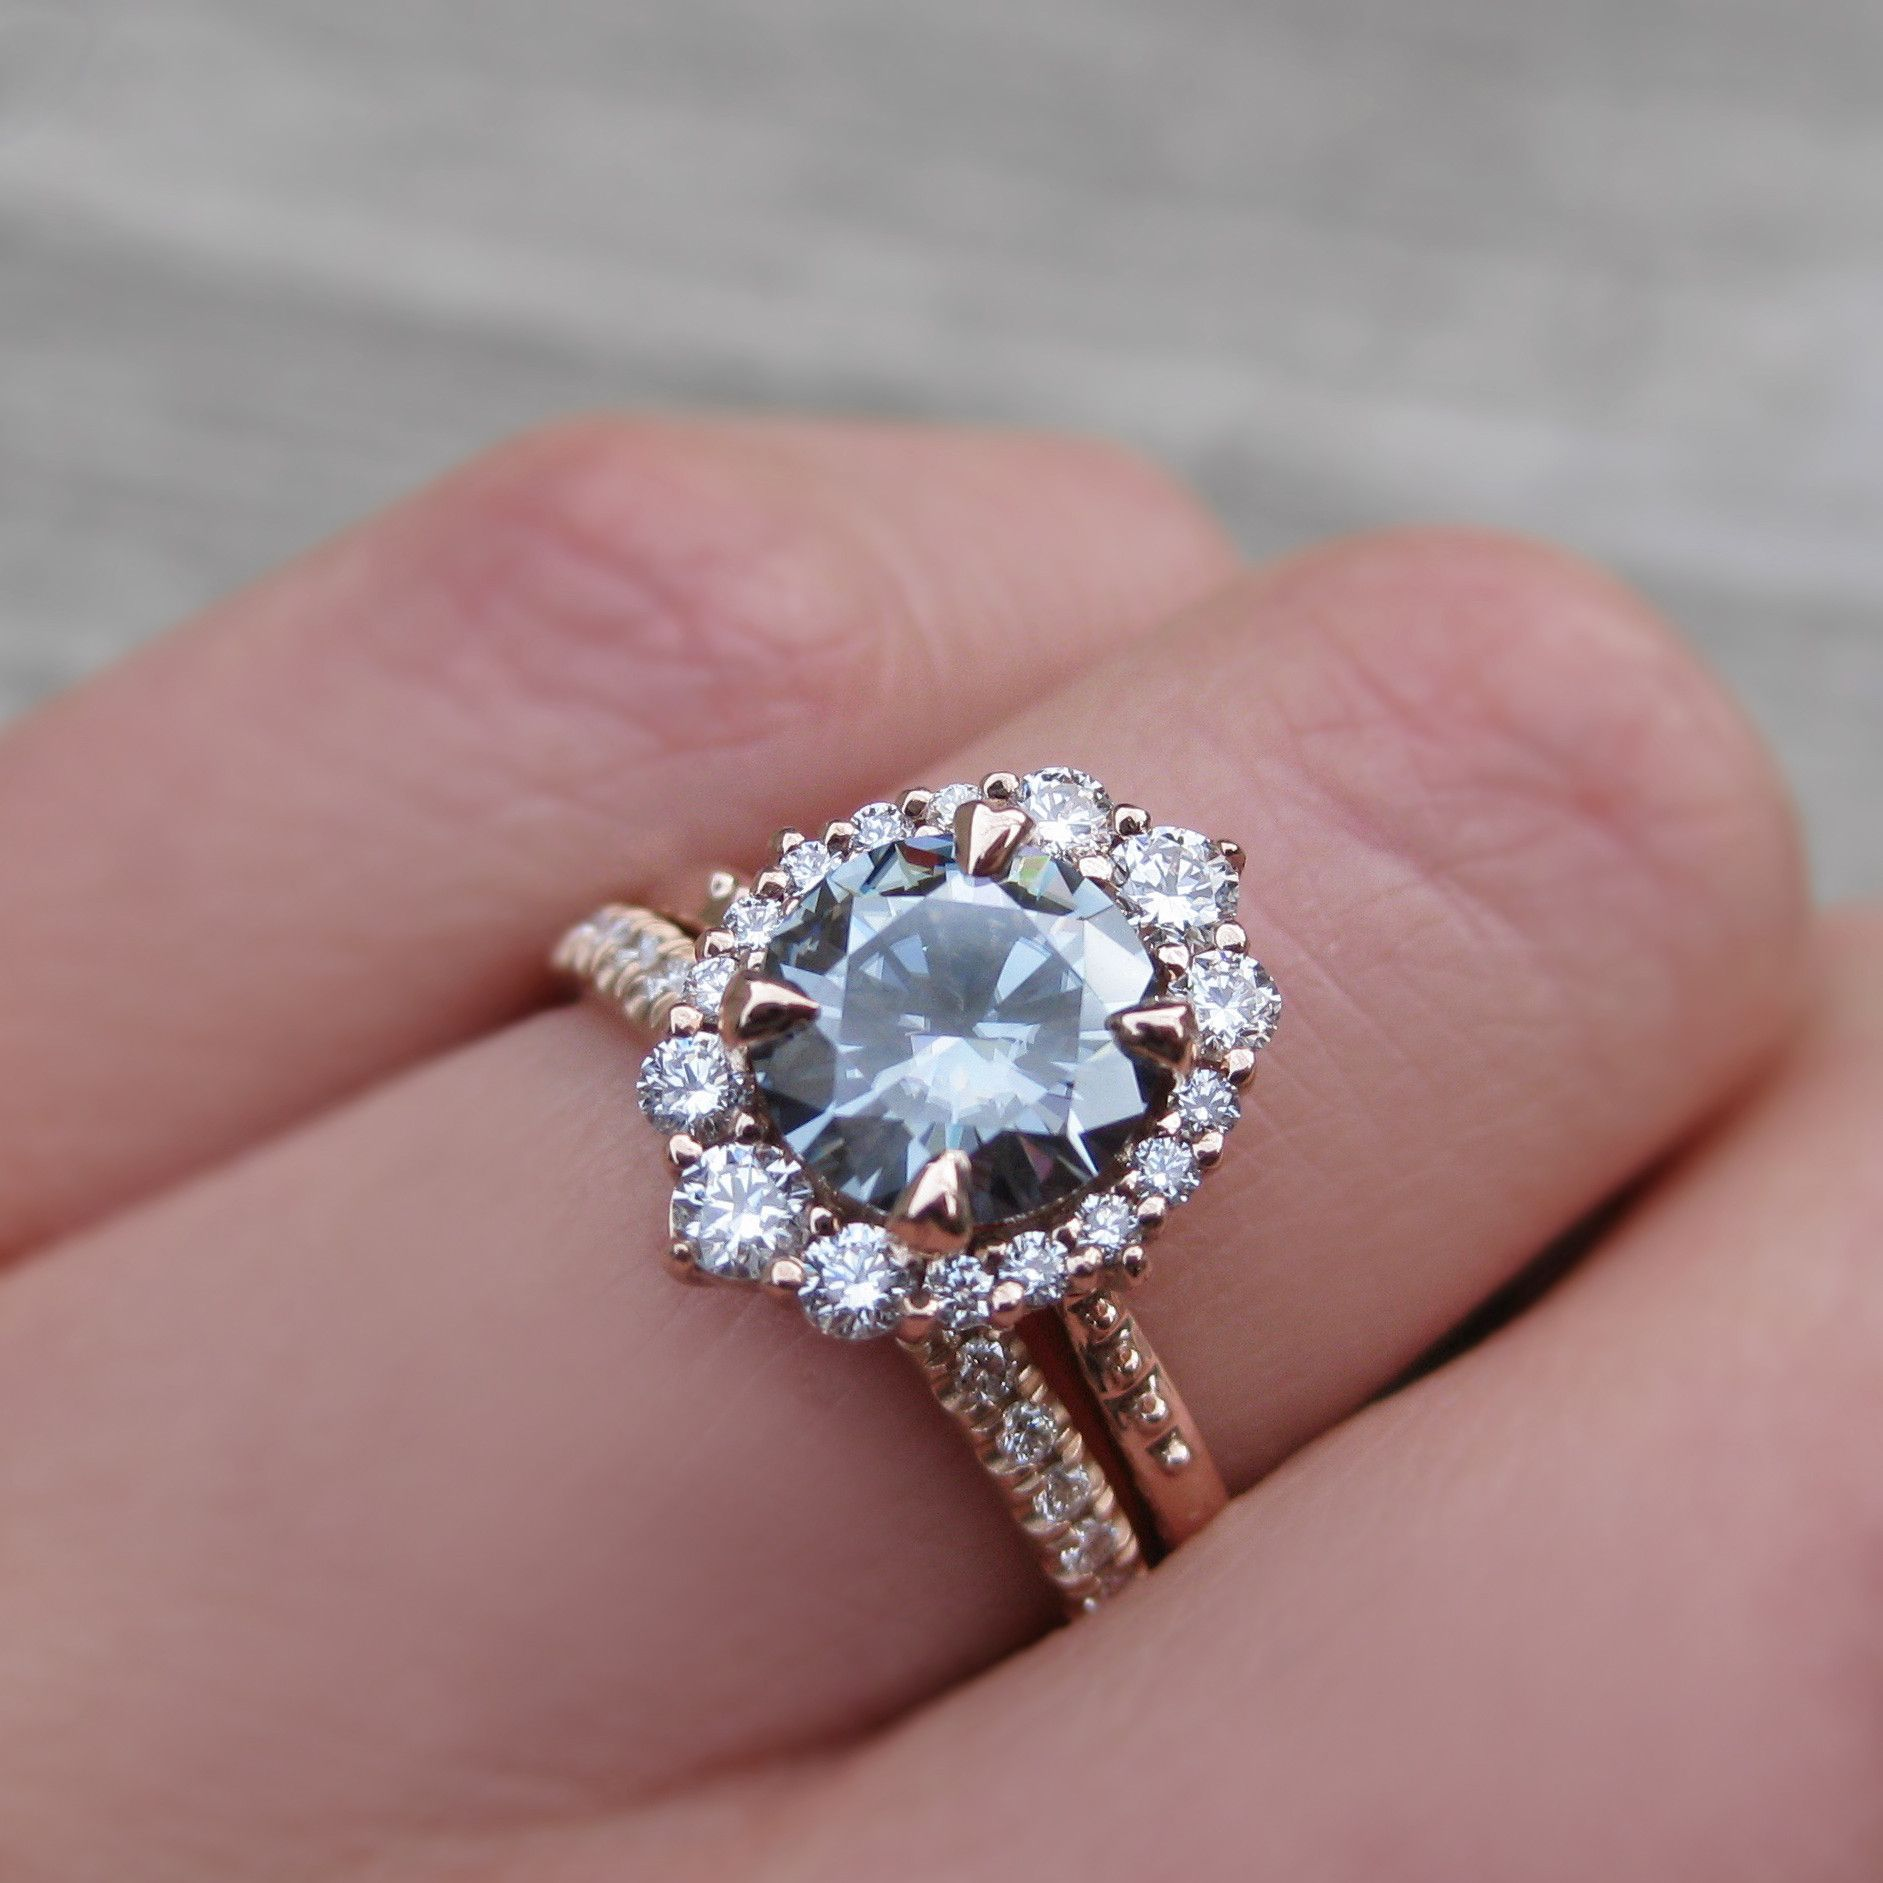 rings diamond watch ring how s blush to youtube blake lively engagement a like get